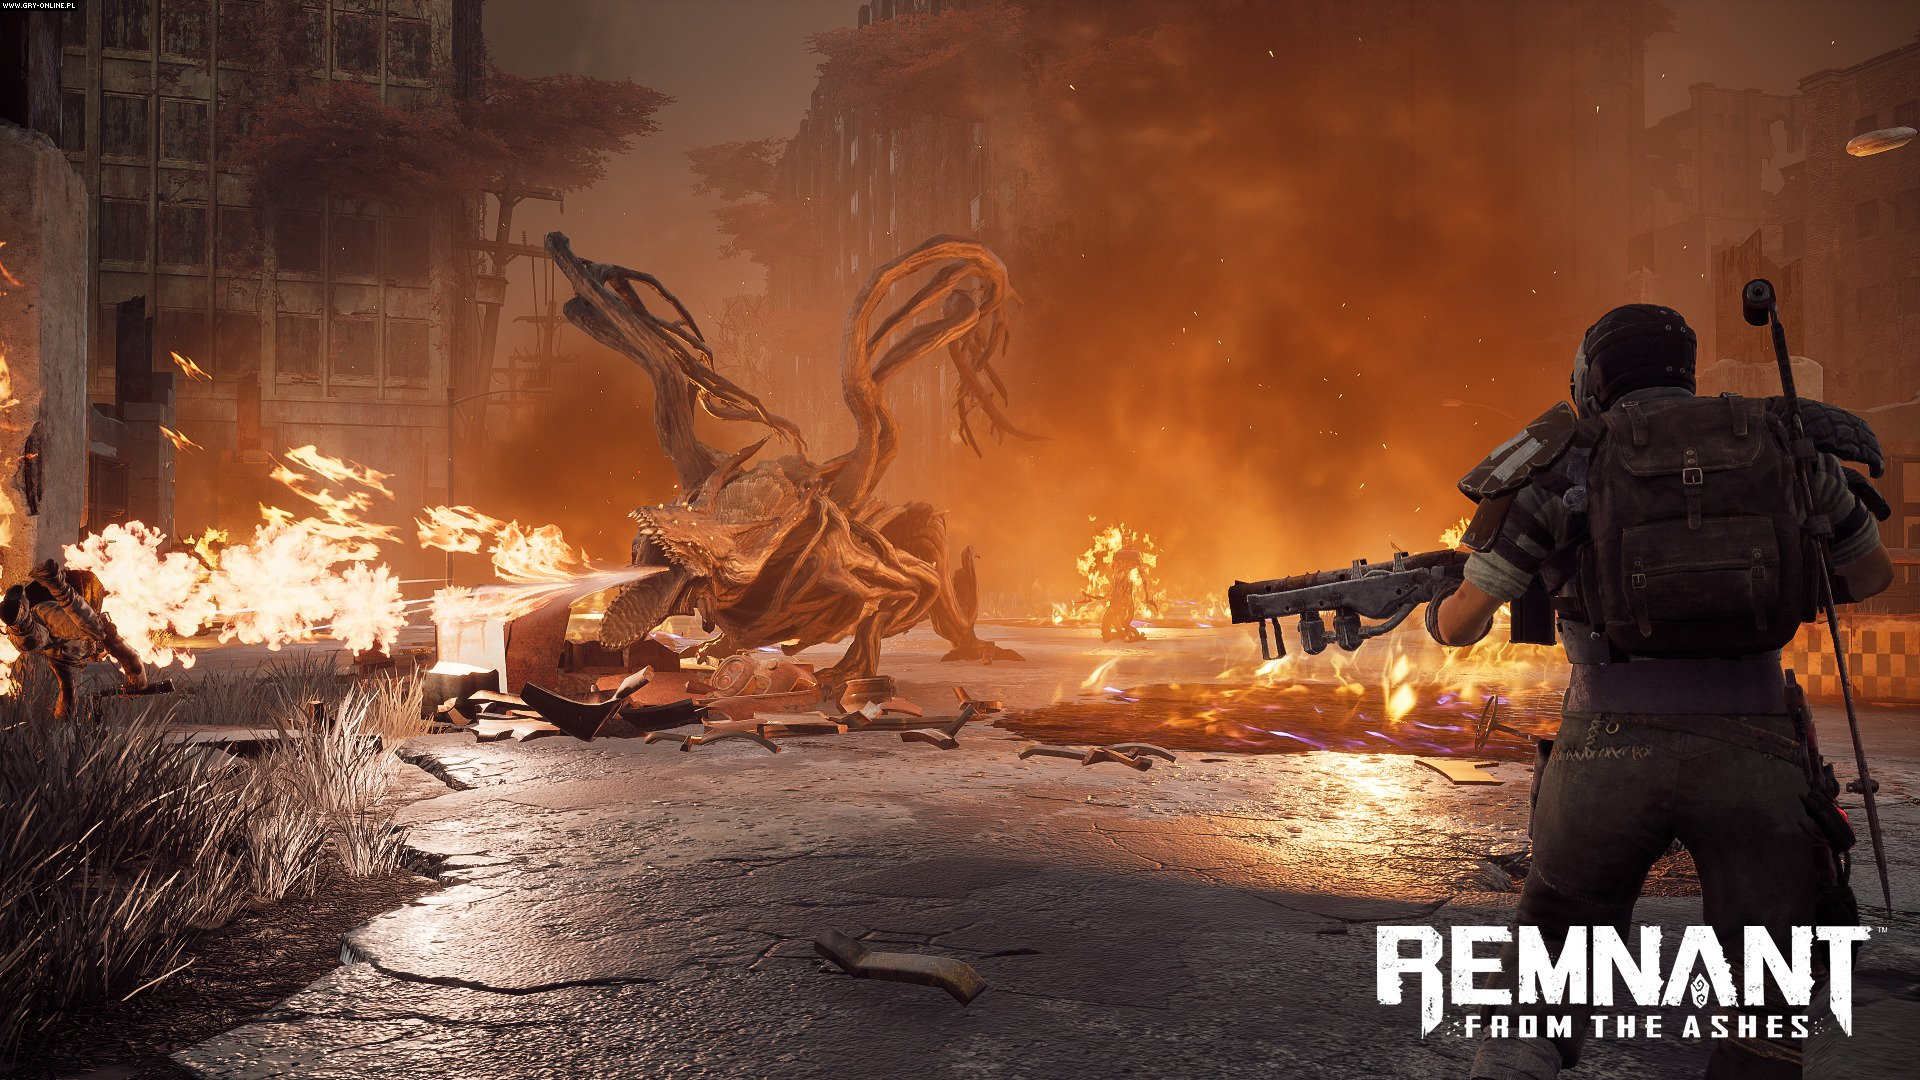 Remnant: From the Ashes PC, PS4, XONE Gry Screen 8/21, Gunfire Games, Perfect World Entertainment